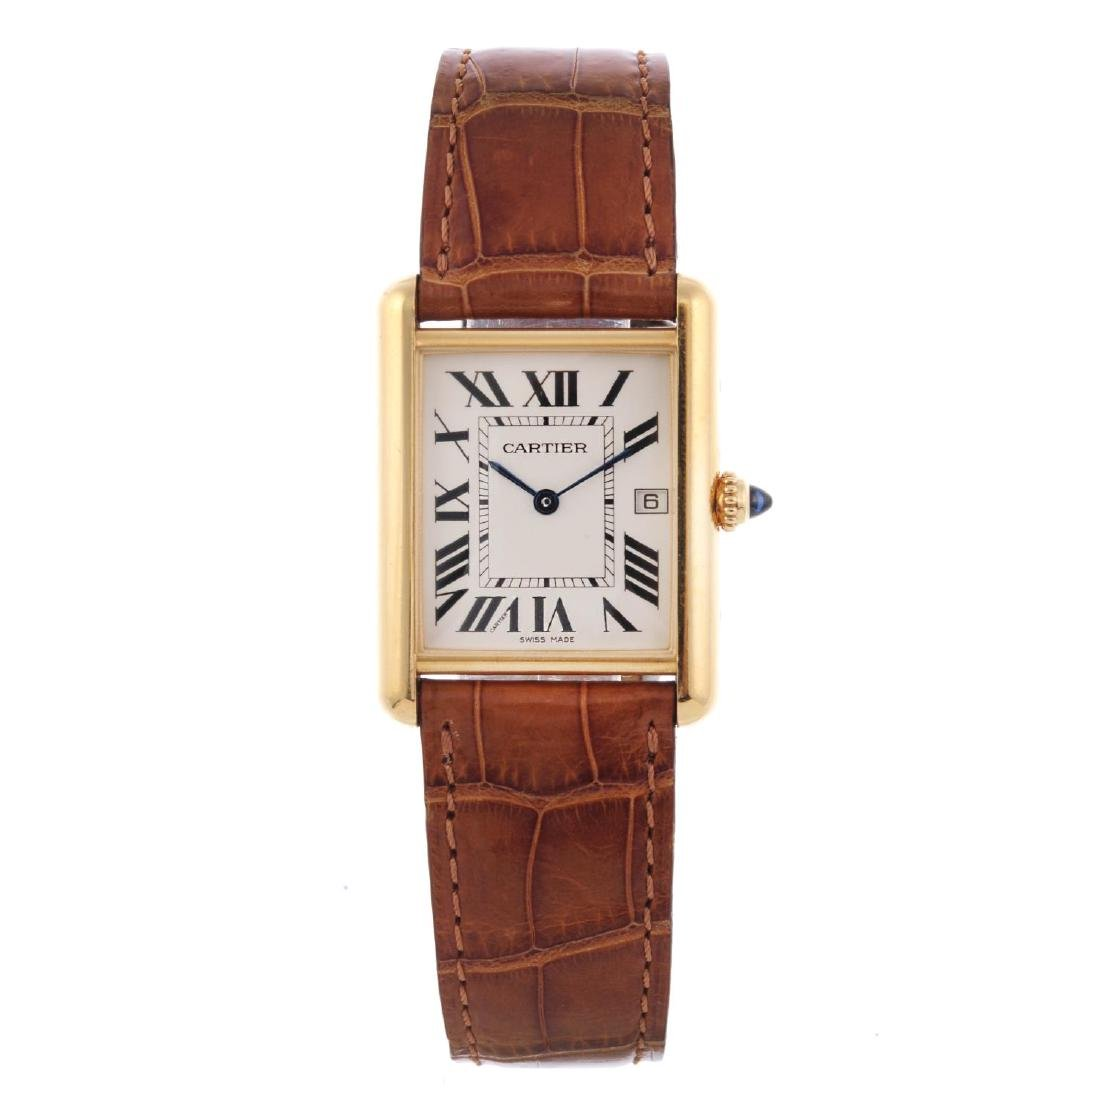 CARTIER - a Tank Louis Cartier wrist watch. 18ct yellow